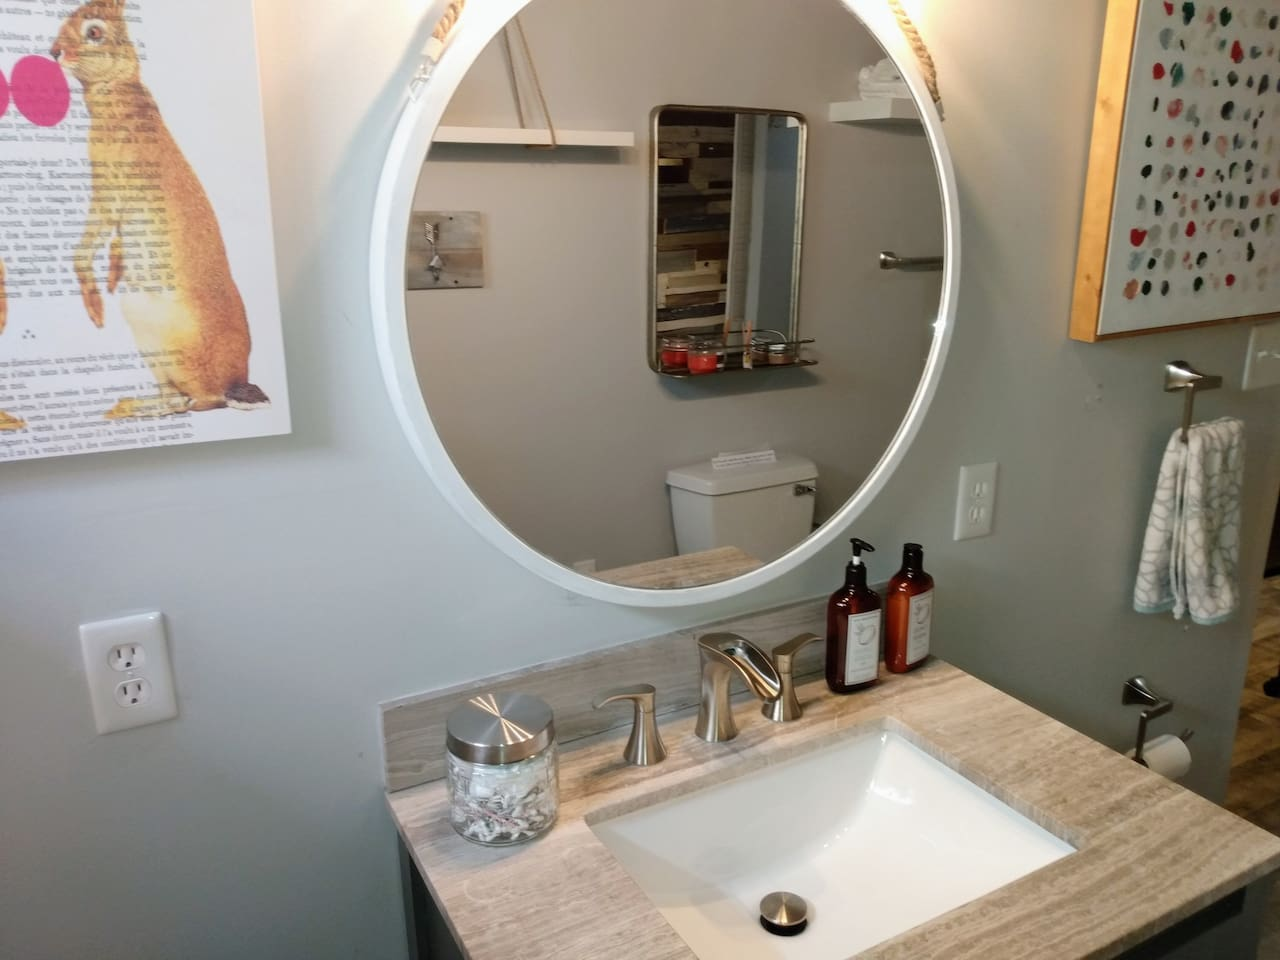 large mirror, qtips, cotton balls, hand soap and lotion...